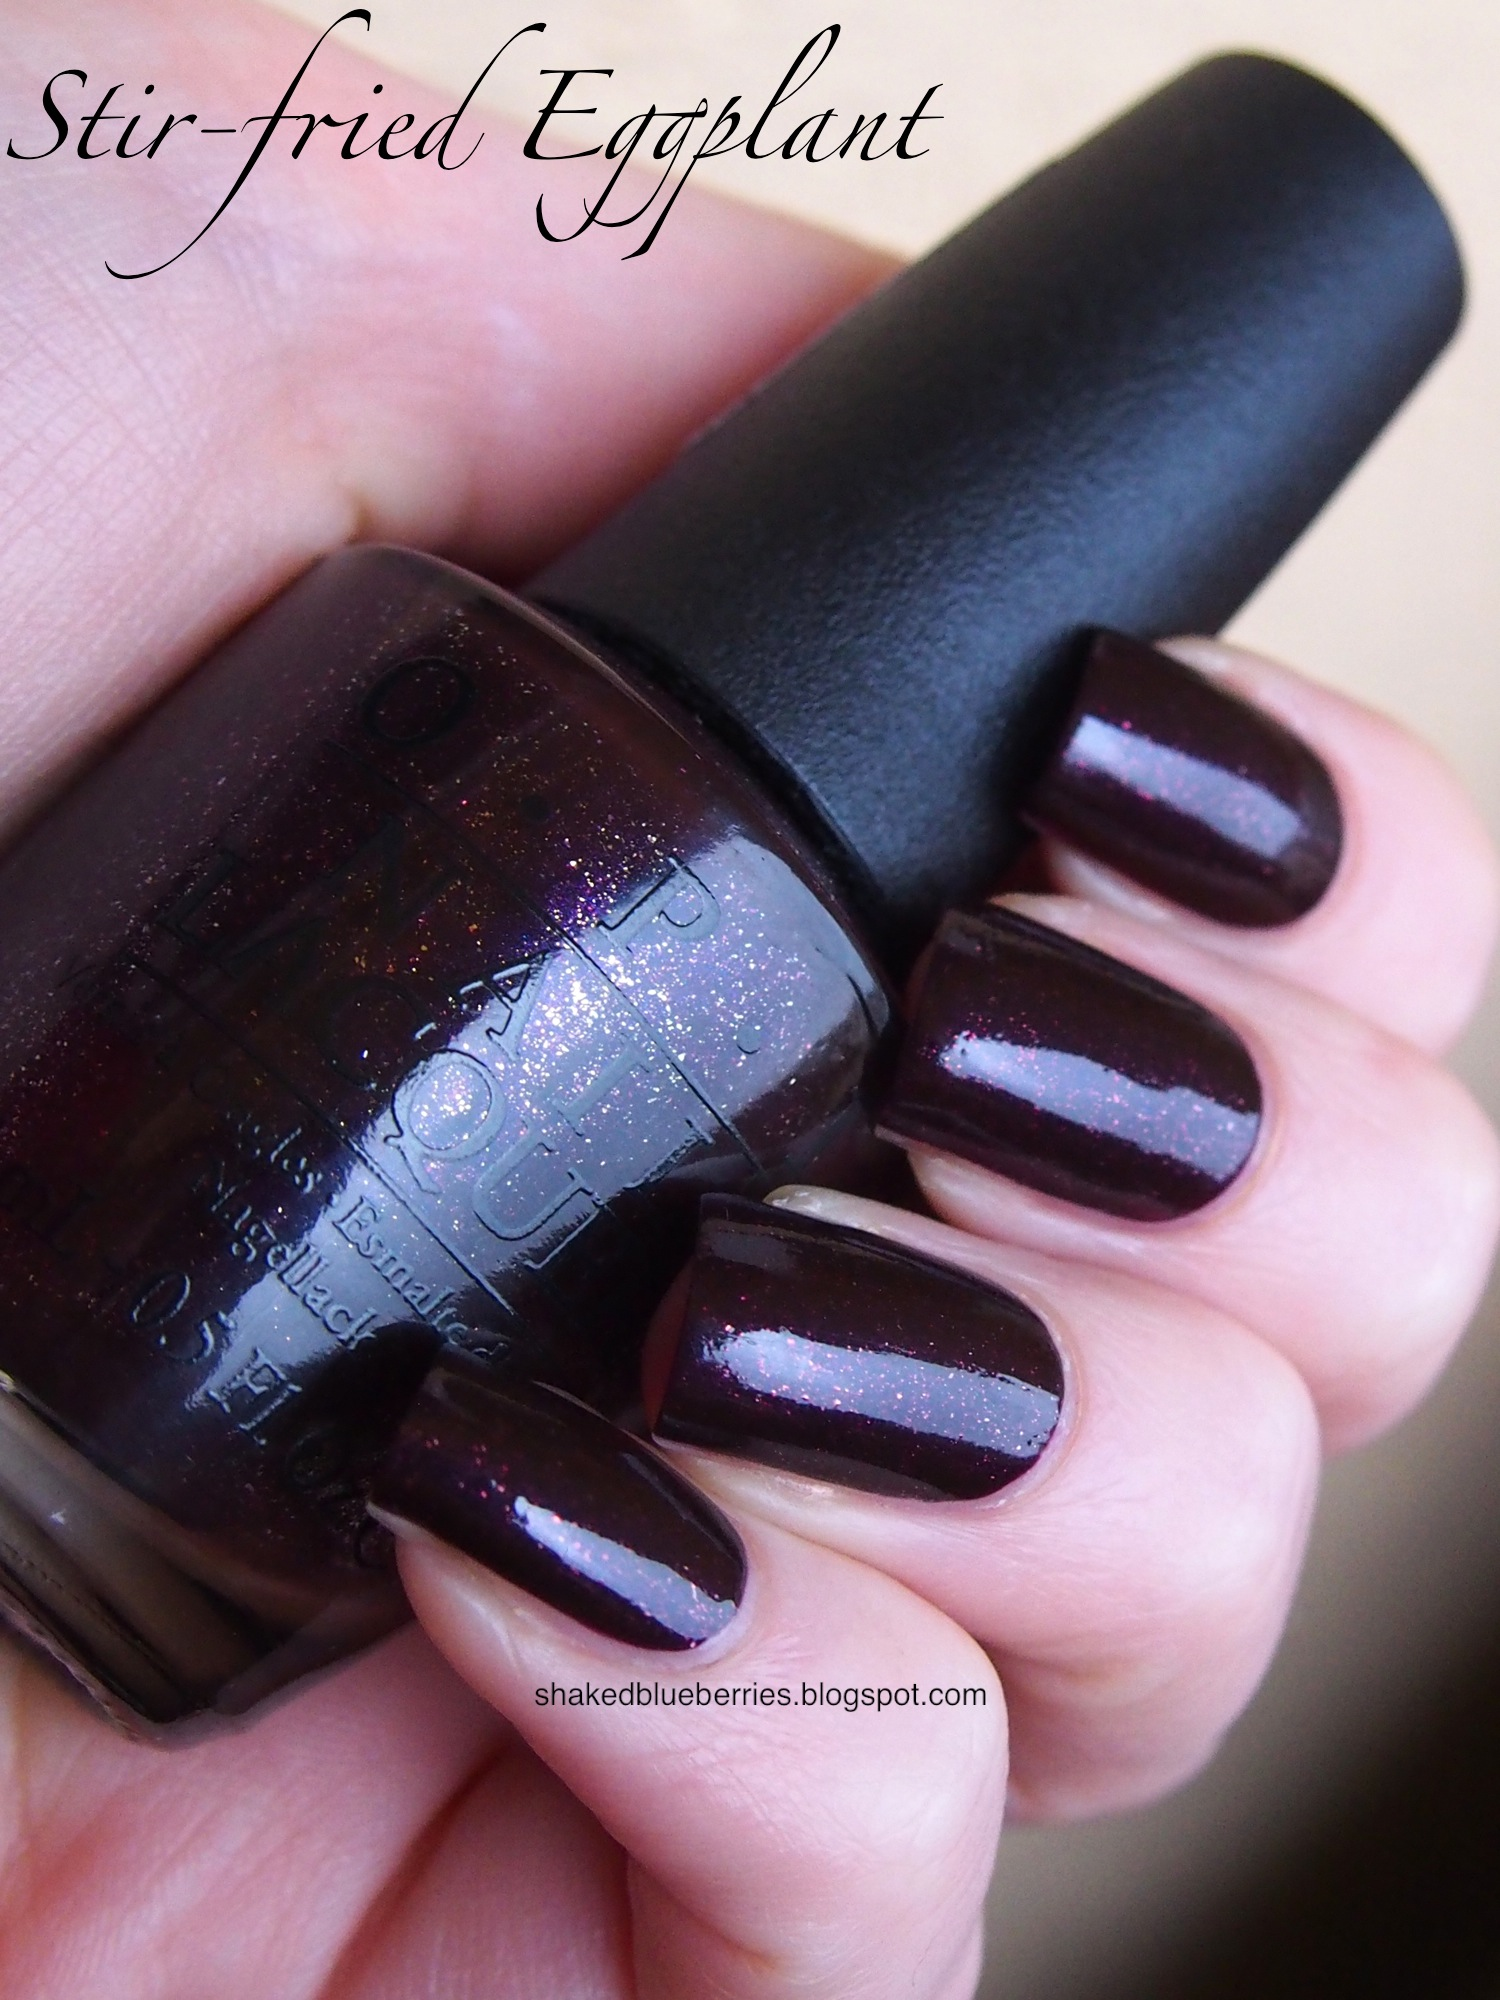 OPI_stirfried_eggplant_2